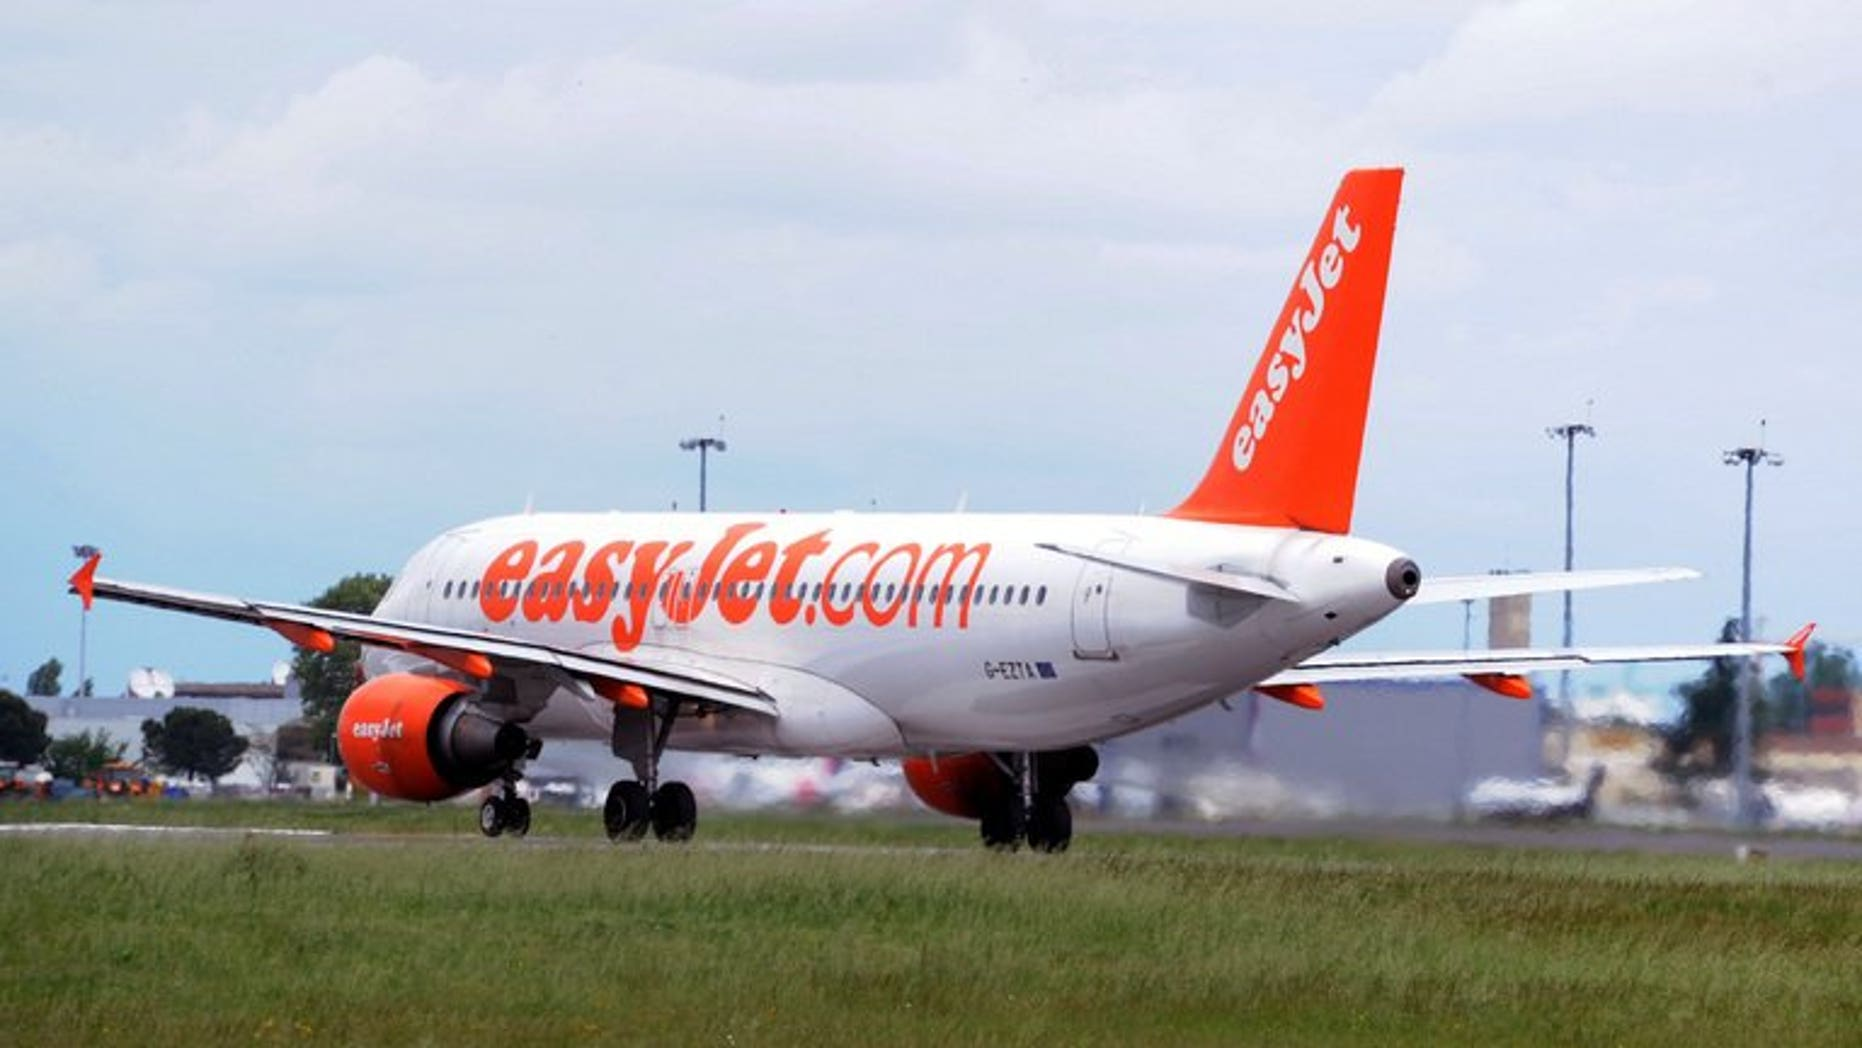 An easyJet Airbus A319 on its way to take off on May 12, 2013 in Toulouse, France. The no-frills airline announced a deal to purchase 135 Airbus single-aisle A320 passenger planes, including 100 new generation neo aircraft for $11.9 billion (8.9 billion euros), after agreeing sizeable discounts.